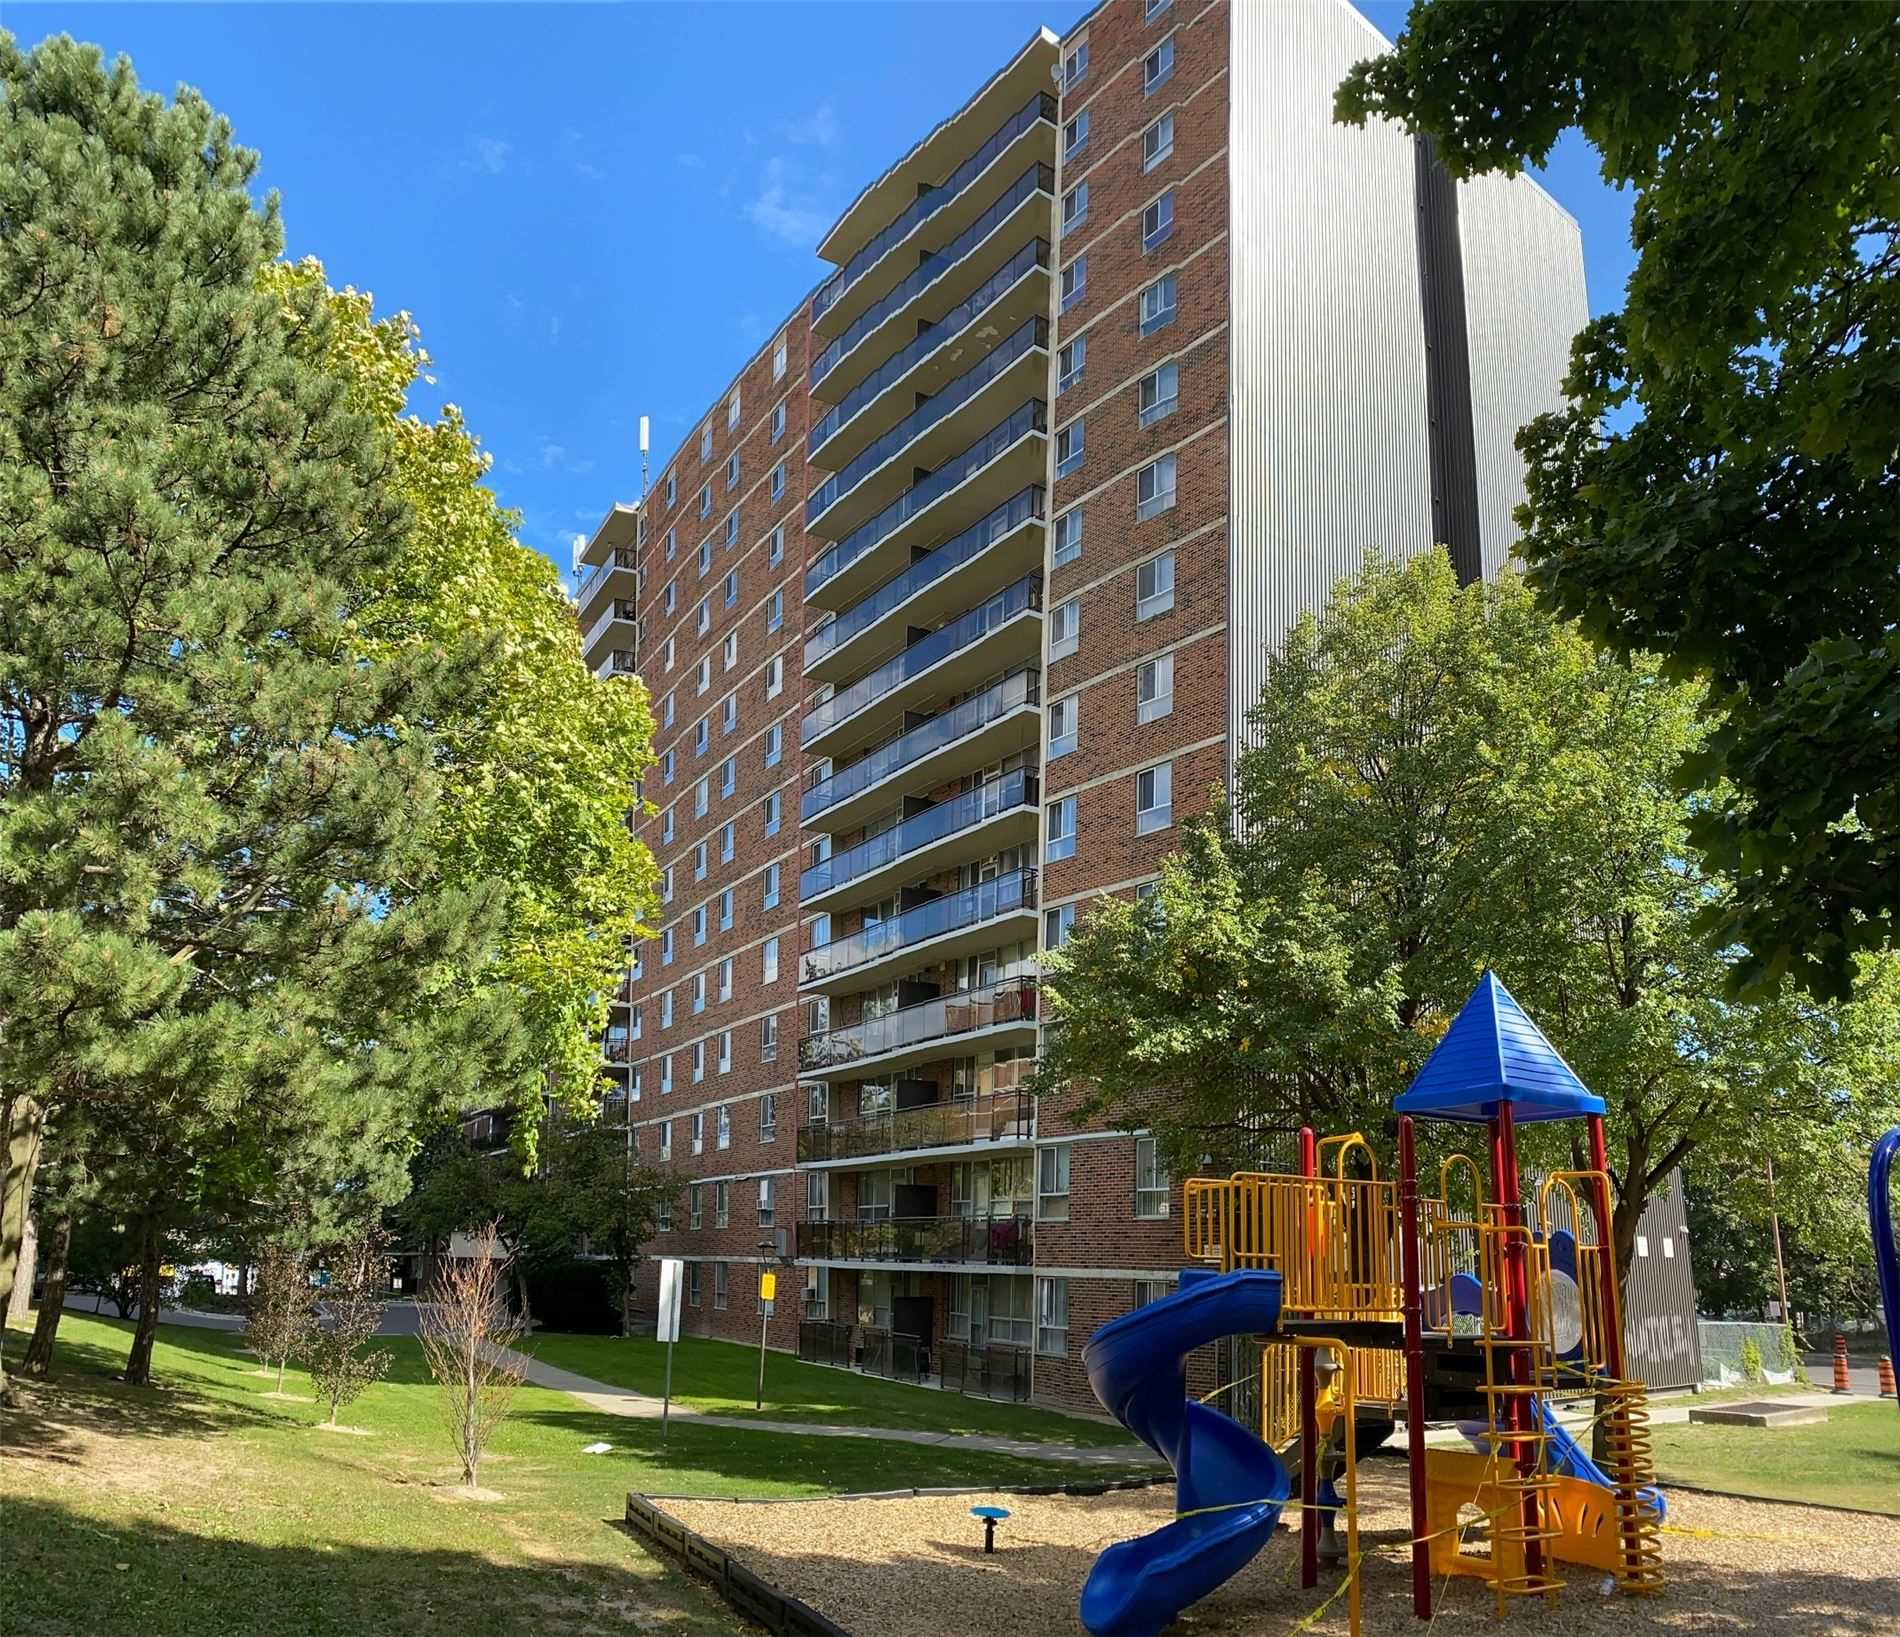 1950 Kennedy Rd, Toronto, Ontario M1P4S9, 2 Bedrooms Bedrooms, 3 Rooms Rooms,1 BathroomBathrooms,Condo Apt,For Sale,Kennedy,E4920102